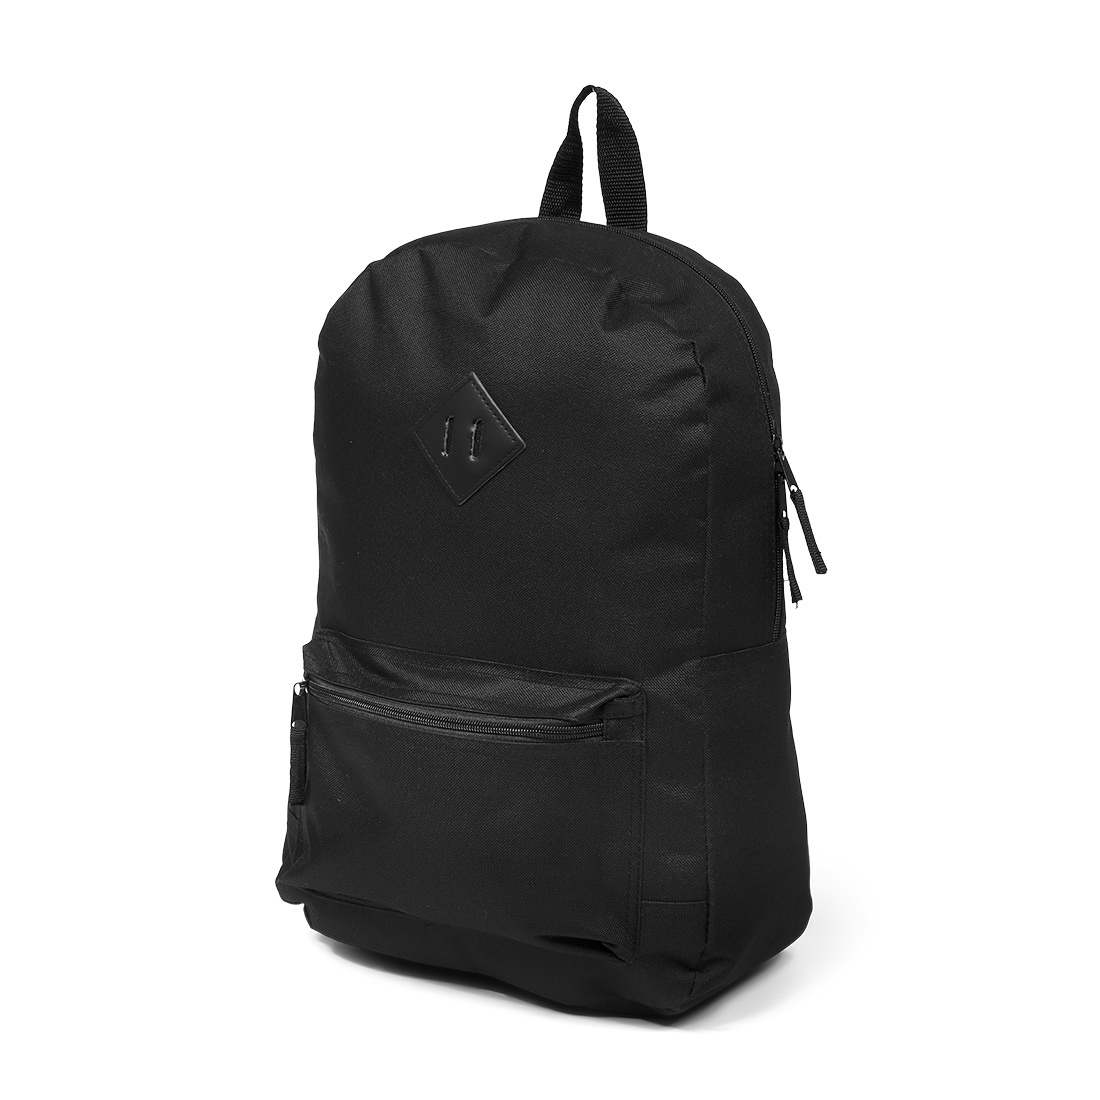 Urban Tourist Backpack RPET Black